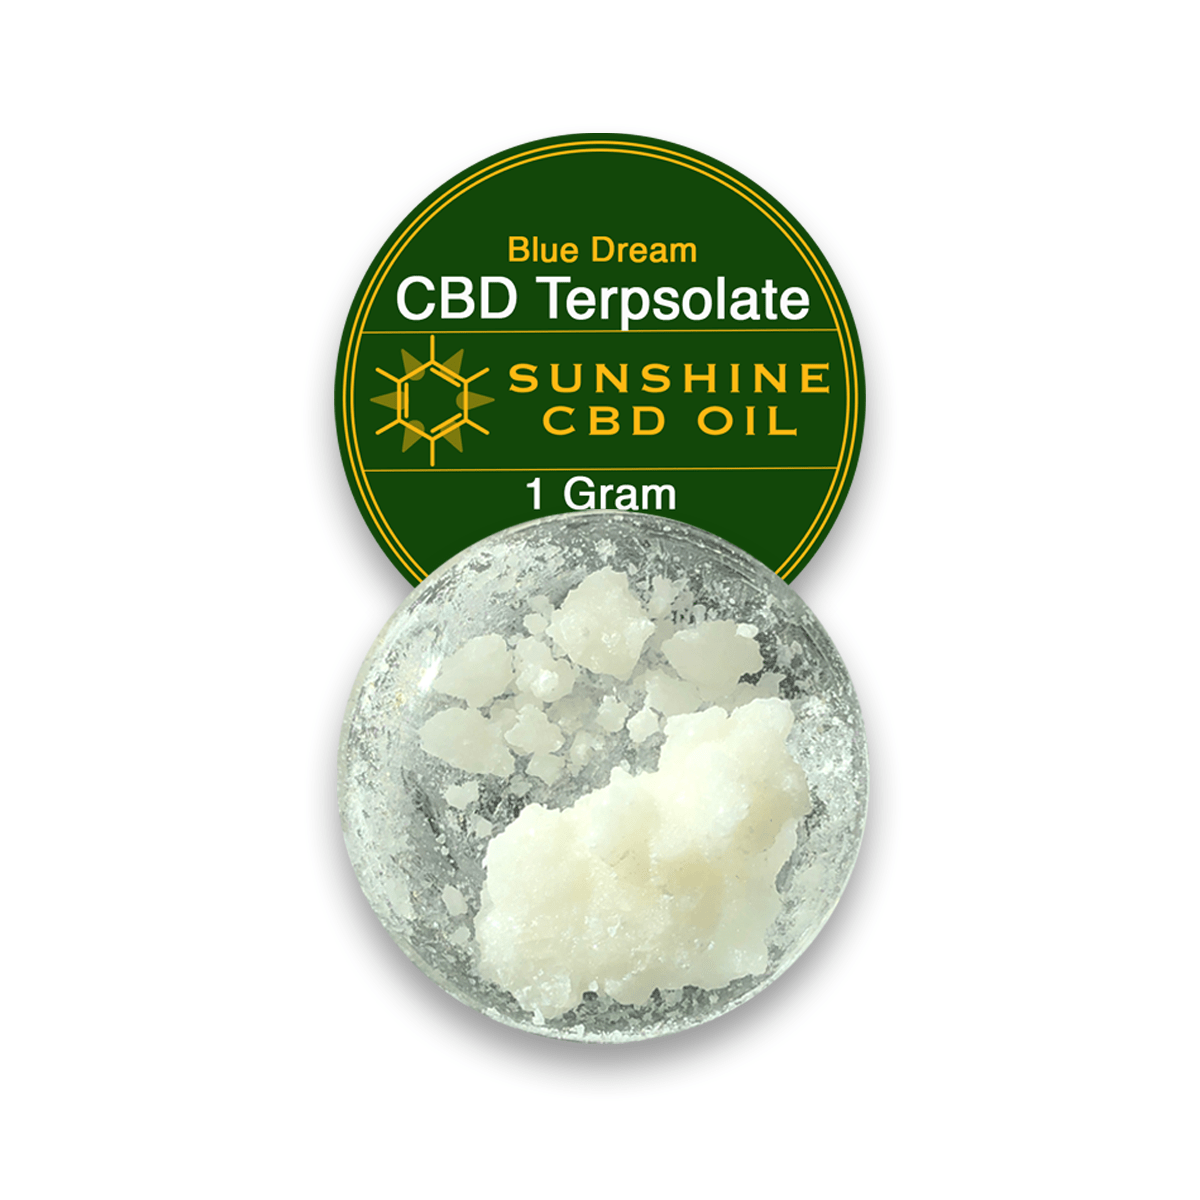 Blue Dream CBD Terpsolate